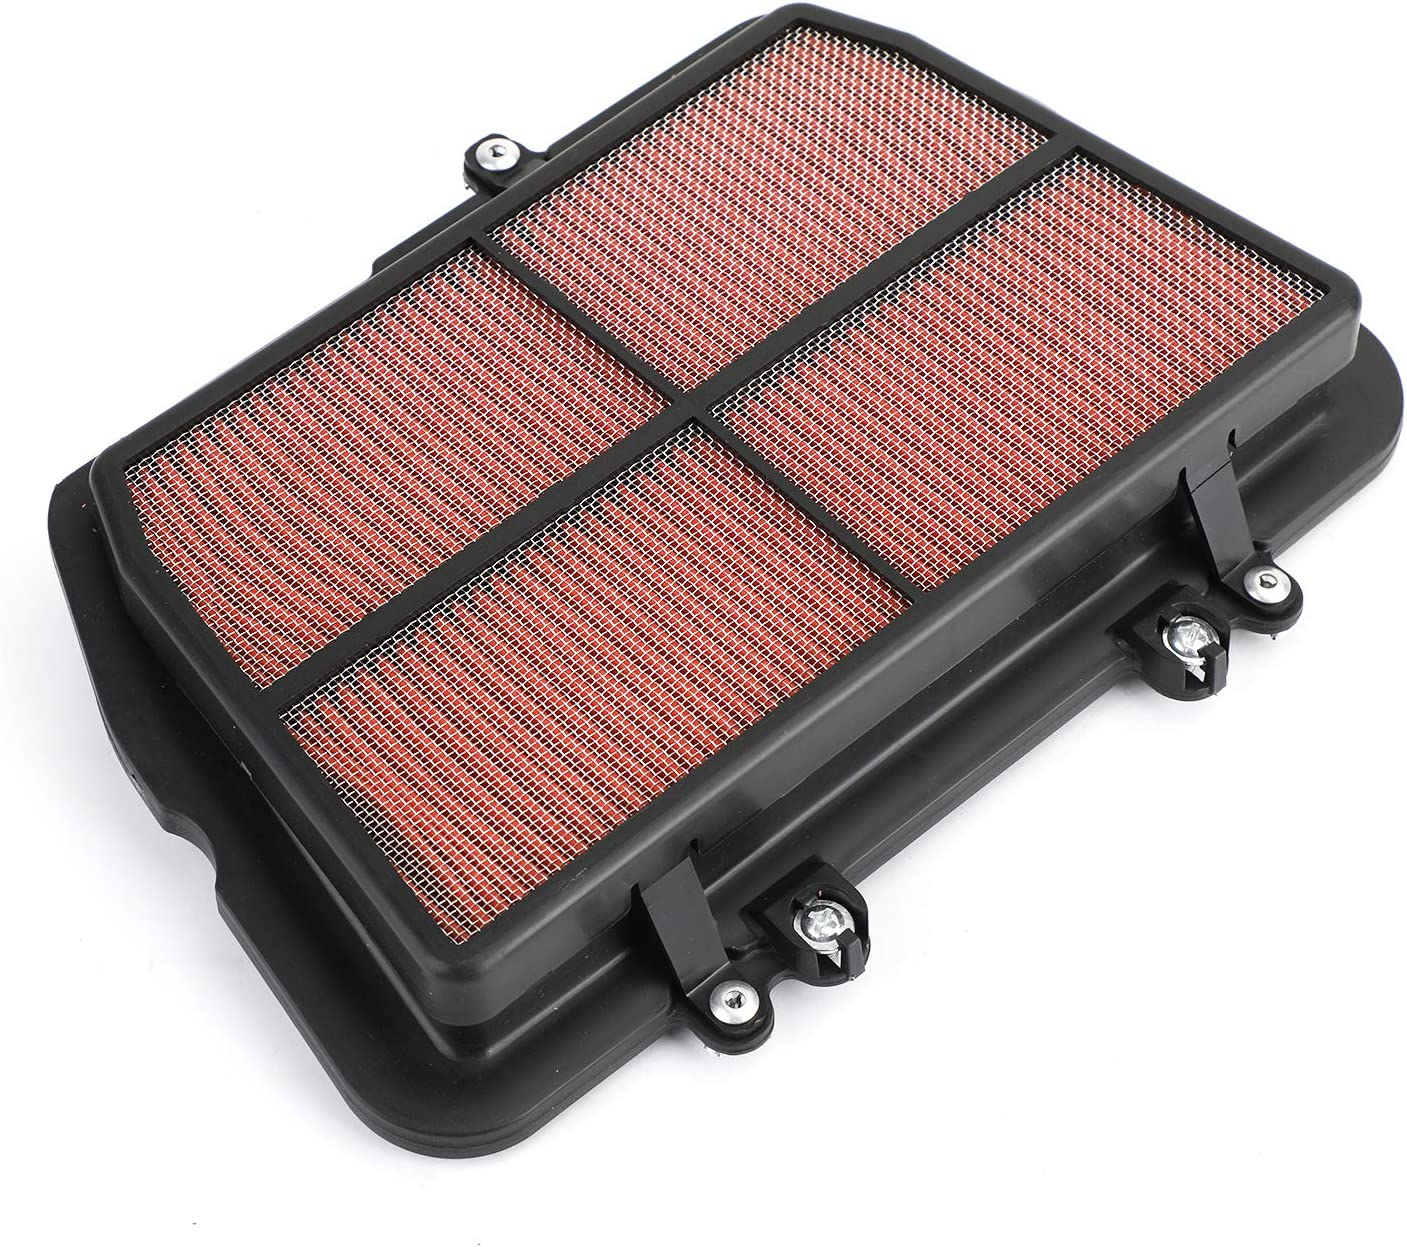 Areyourshop Air Filter Element for Trium-ph TIGER 800 XC XCX XR XRT XRX 2010-2019 T2200557